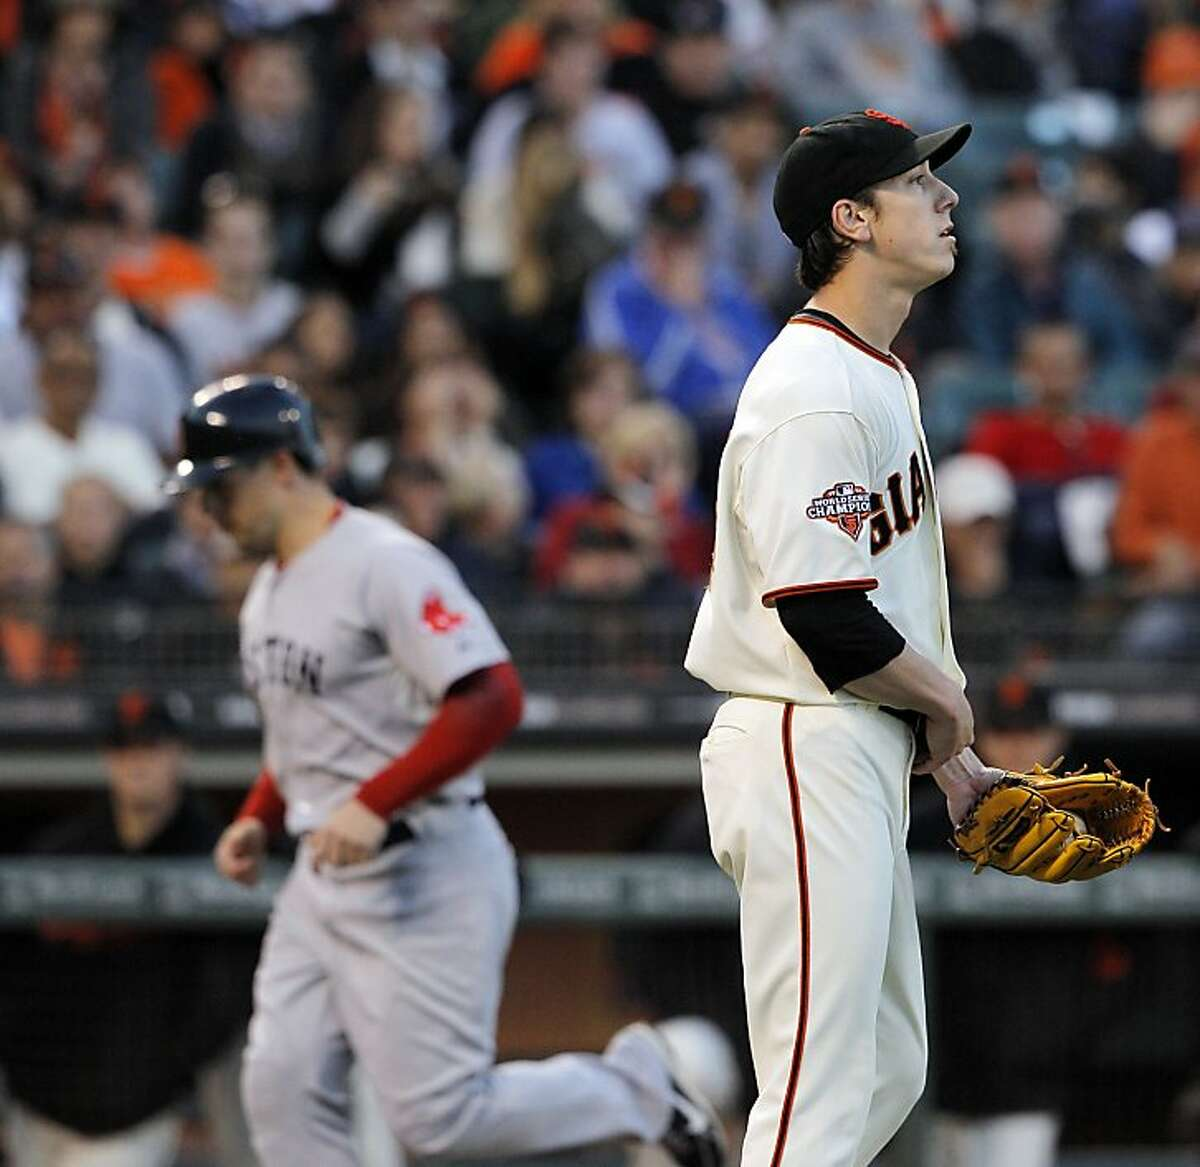 Tim Lincecum turns away after a balk that allowed Daniel Nava to trot home.